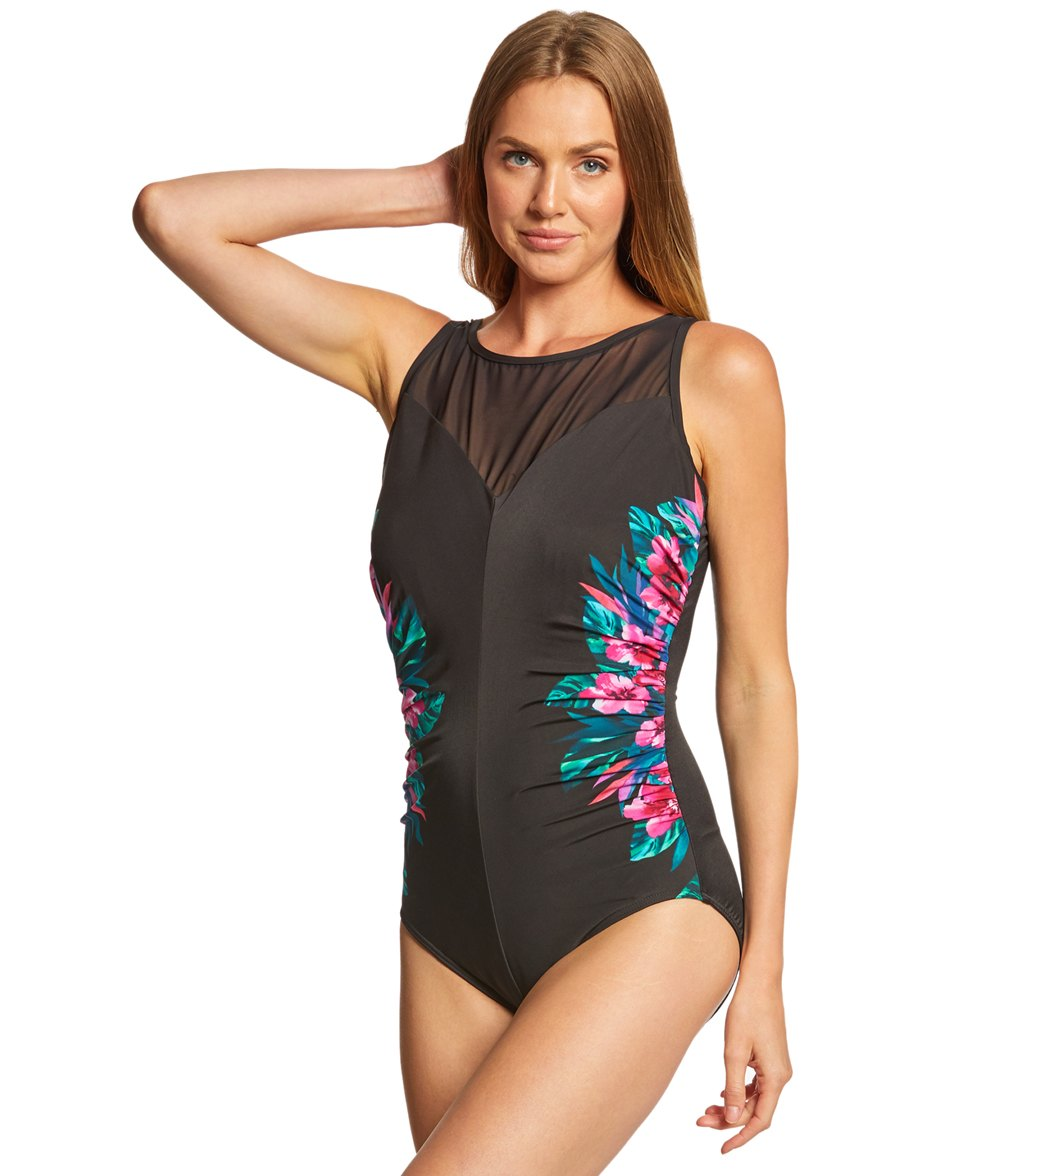 c8bc4843443 Miraclesuit Tahitian Temptress Fascination One Piece Swimsuit (DD Cup)